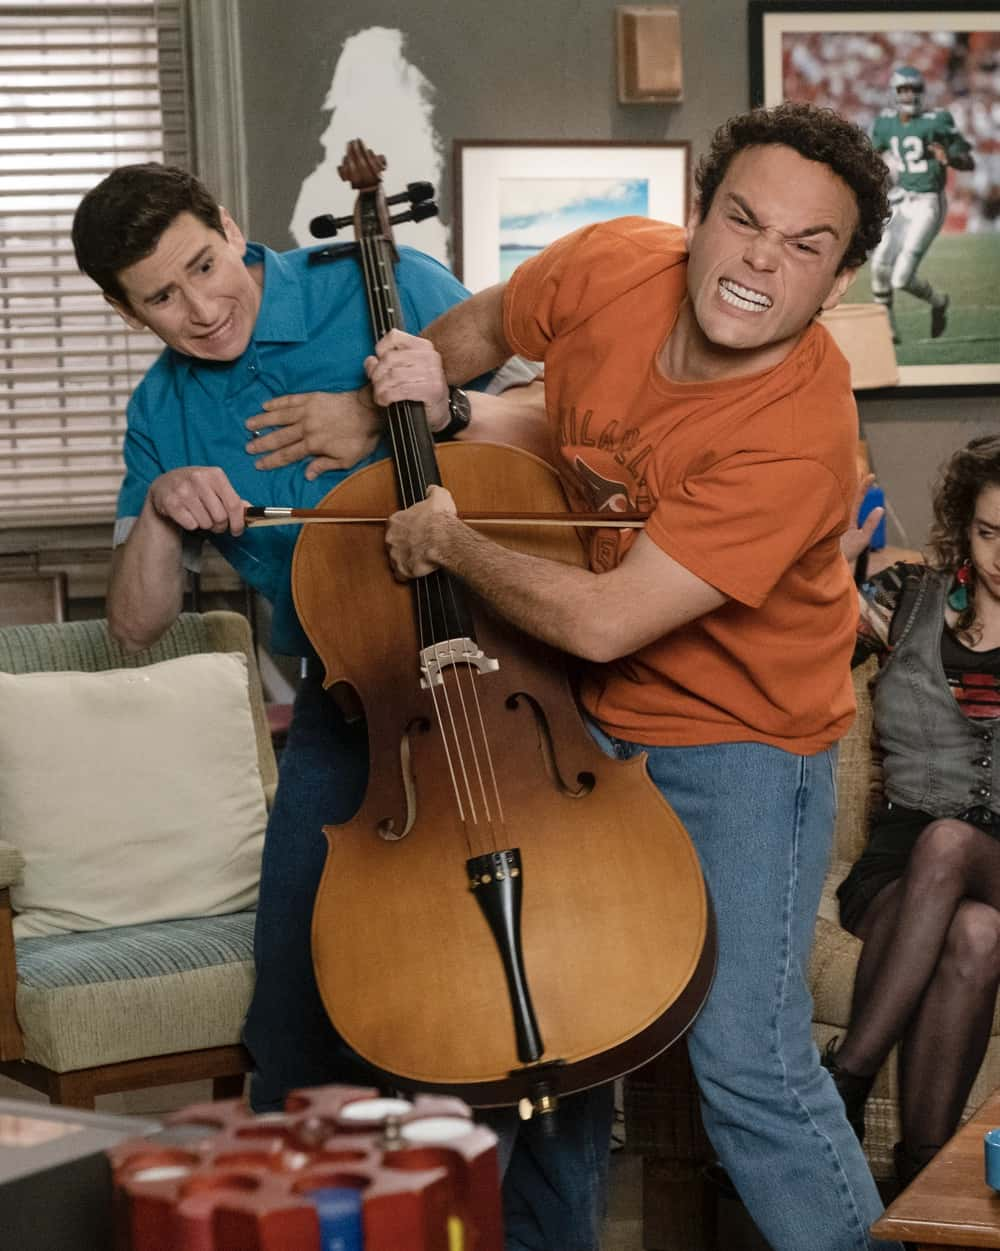 """THE GOLDBERGS Season 8 Episode 18 - """"The Dating Game"""" – Trying to move on from their breakup, Erica goes on a date with a guy from the coffee shop while Geoff ends up on an episode of """"The Dating Game,"""" which winds up making things even more difficult for them both. Meanwhile, Beverly is thrilled to learn that Murray has spontaneously purchased a shore house until she realizes it's not quite the luxury home she imagined on a new episode of """"The Goldbergs,"""" WEDNESDAY, APRIL 21 (8:00-8:30 p.m. EDT), on ABC. (ABC/Scott Everett White) TROY GENTILE"""